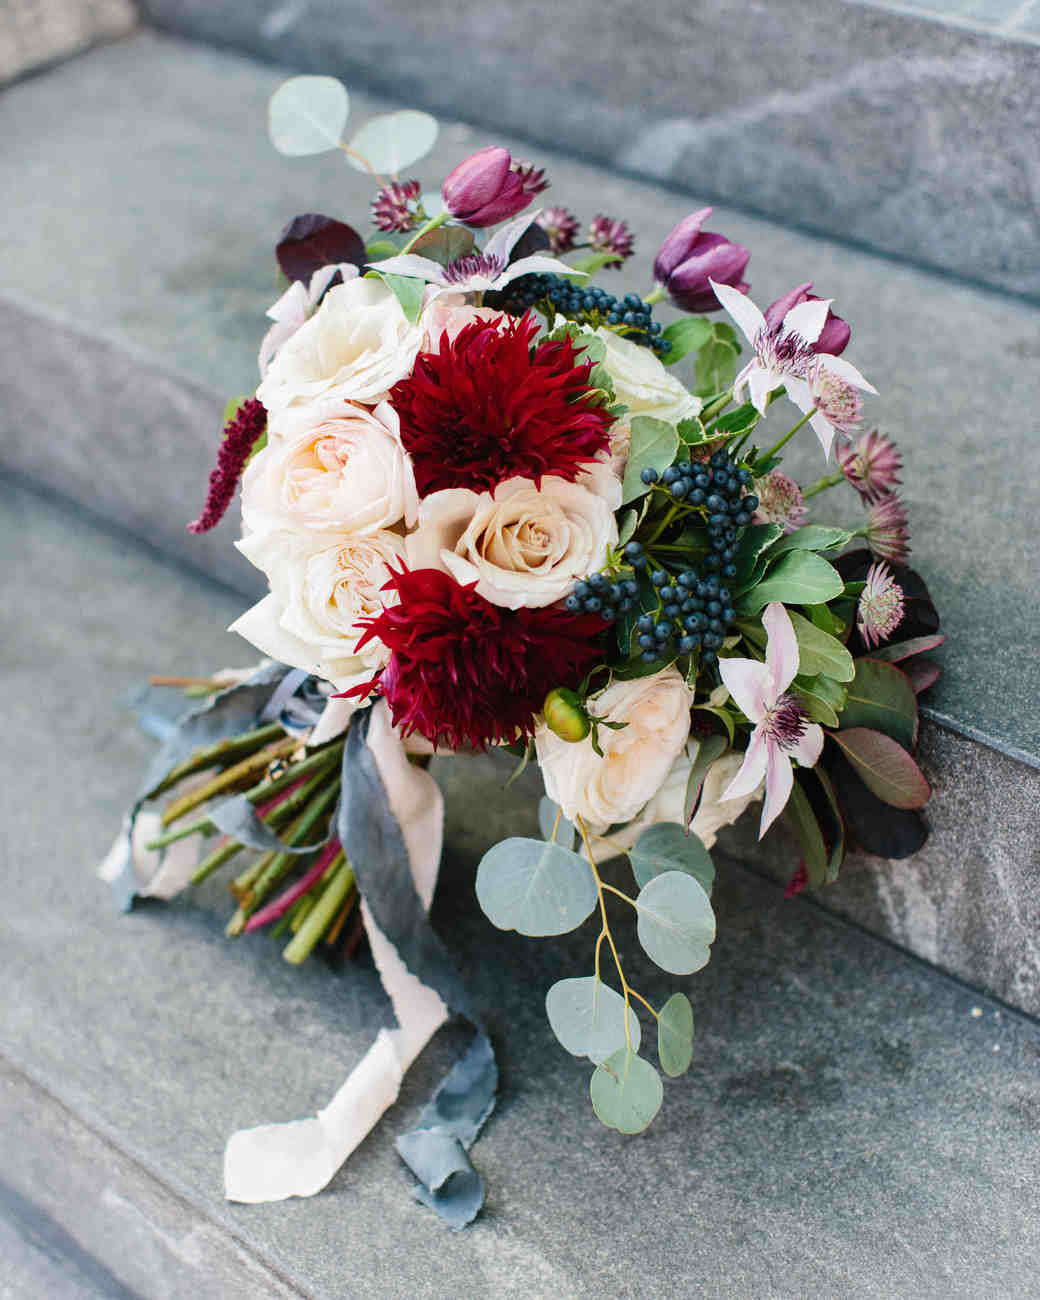 Wedding Flowers Bouquet Ideas: 22 Modern Wedding Bouquets